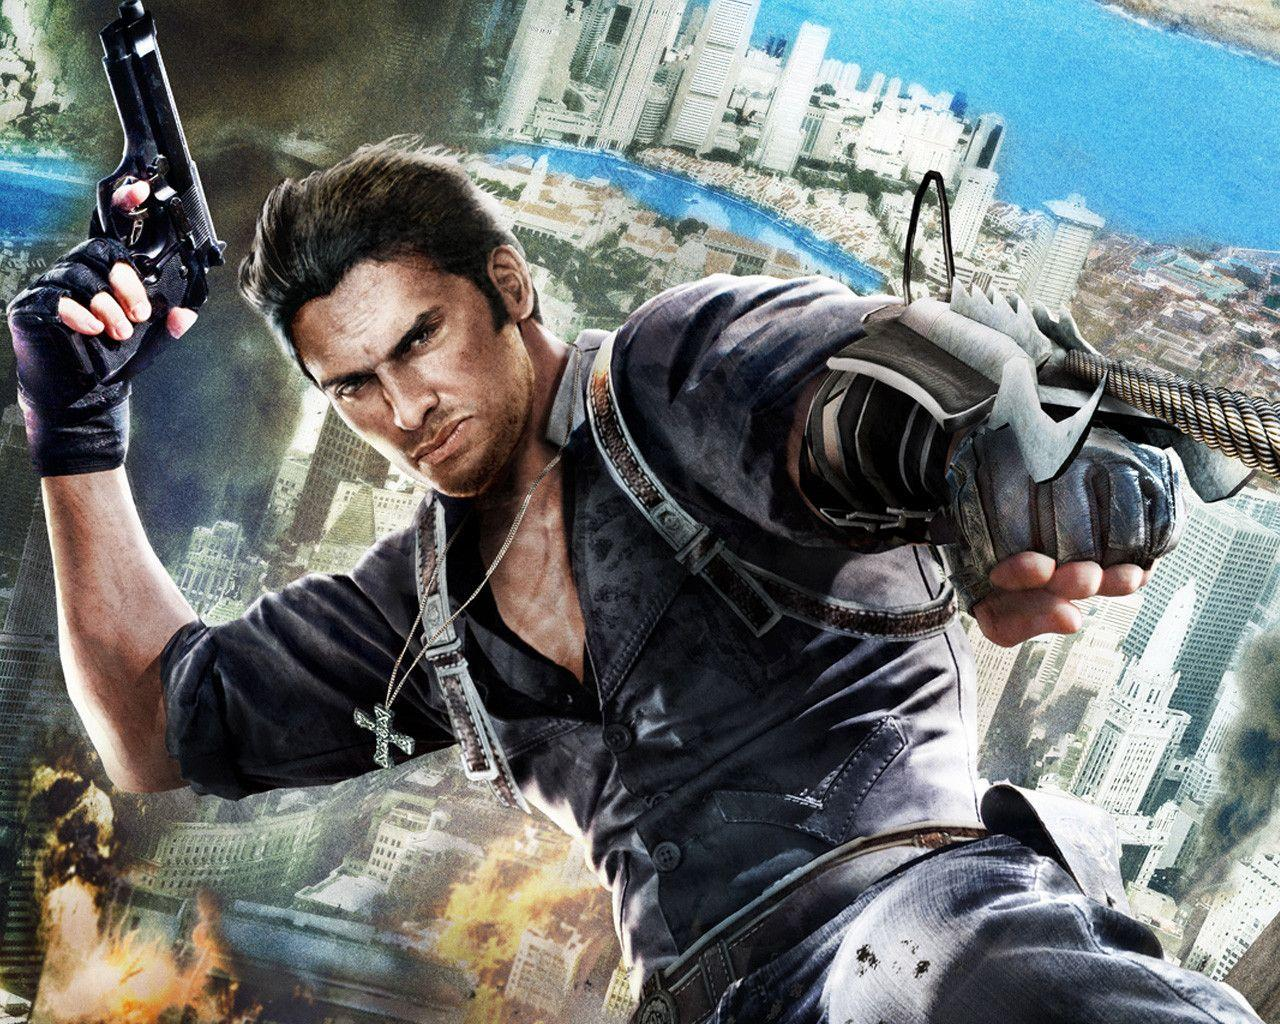 Pin 1440x900 Just Cause 2 Desktop PC And Mac Wallpapers